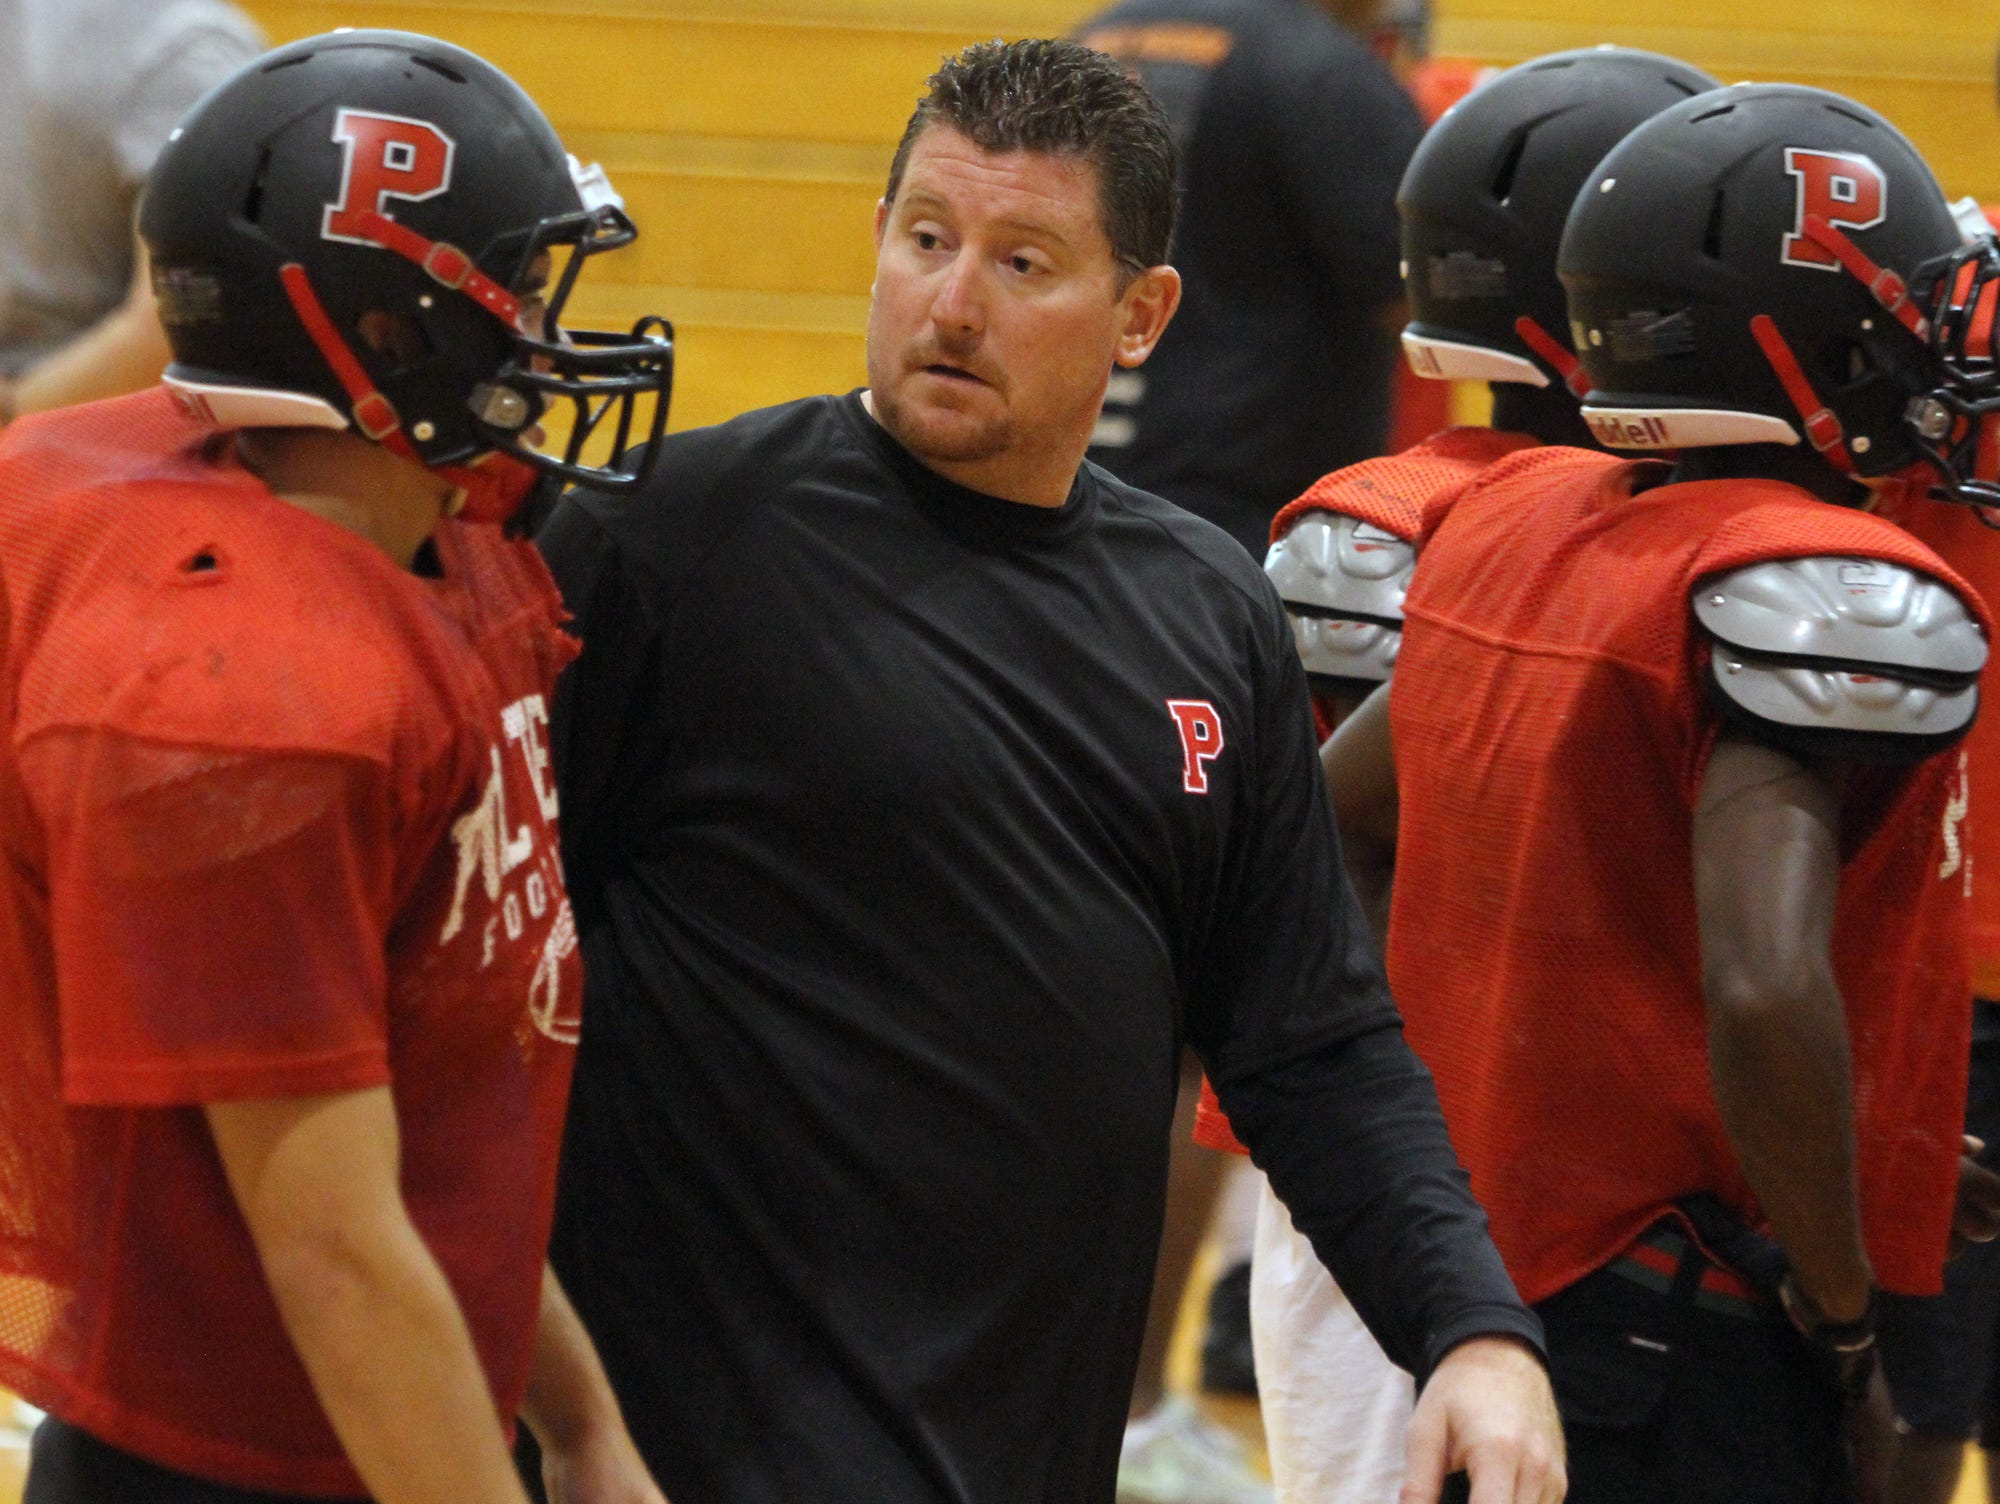 Kevin Smith guides Polytech through a preseason practice during his first stint as the Panthers' football coach in 2013. Smith will return as Polytech's coach next season.